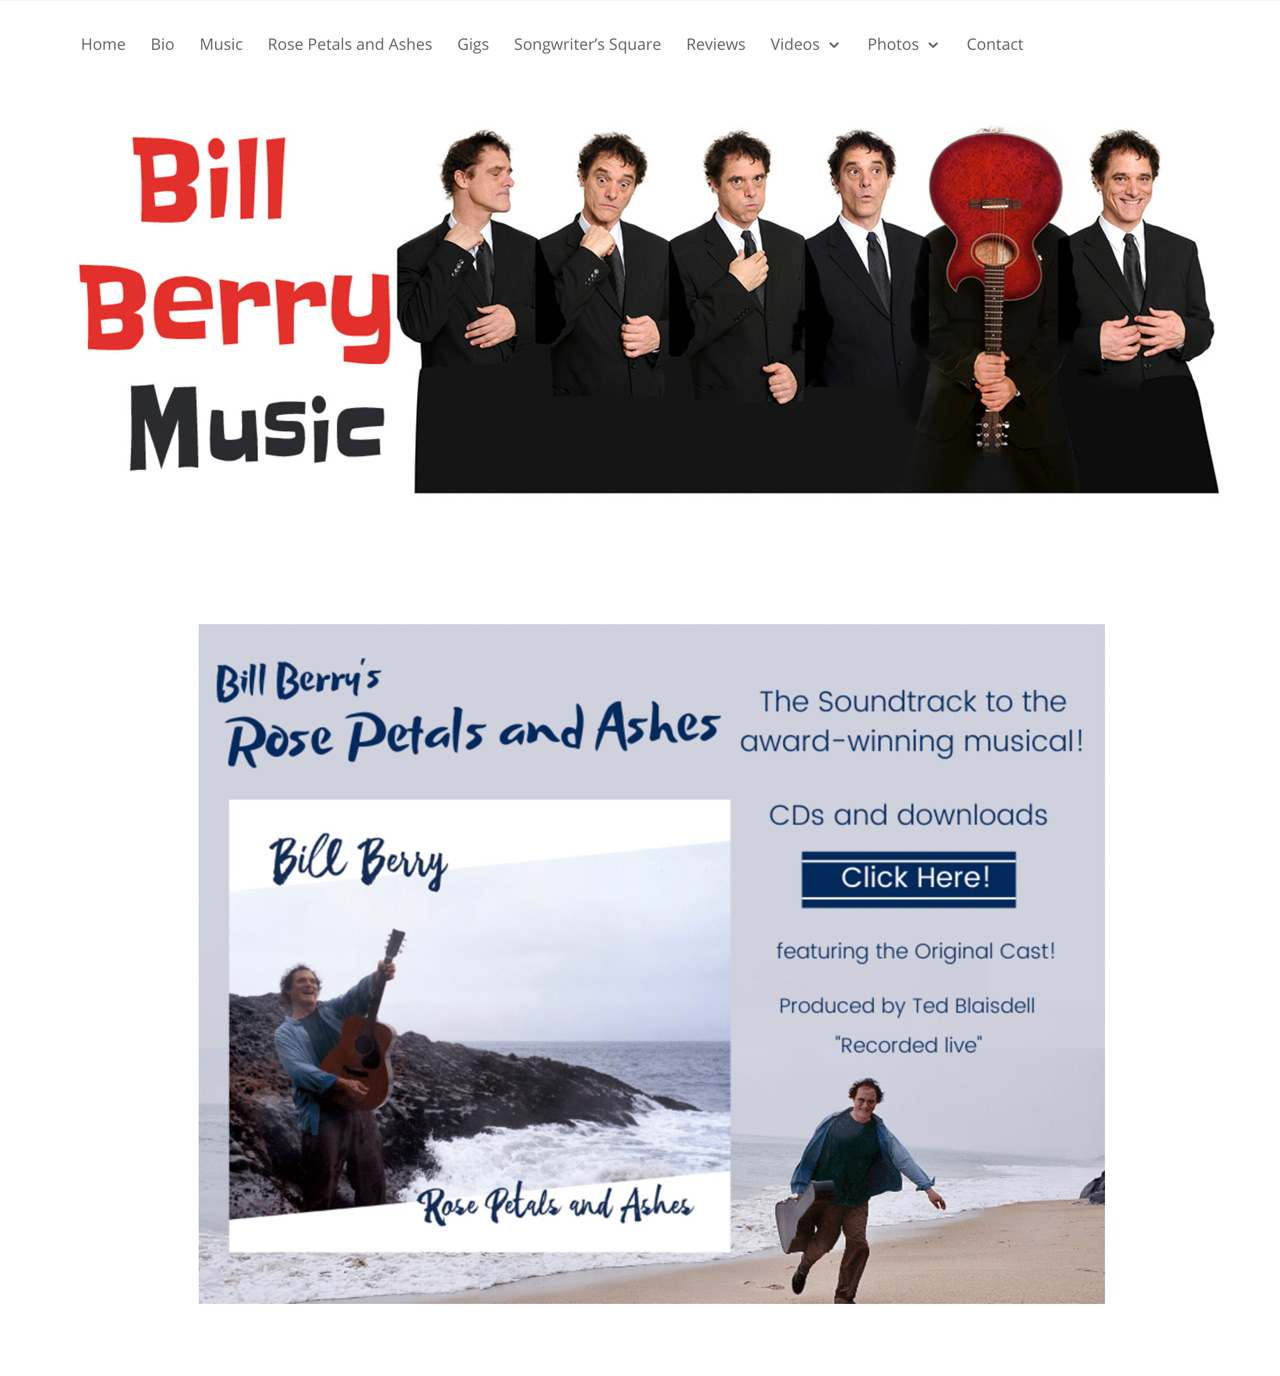 Six Bill Berrys lined up shoulder to shoulder, one holding guitar over face on homepage of Bill Berry Music website, plus Rose Petals and Ashes CD cover photo featuring Bill Berry solo seaside exuberantly brandishing acoustic guitar.